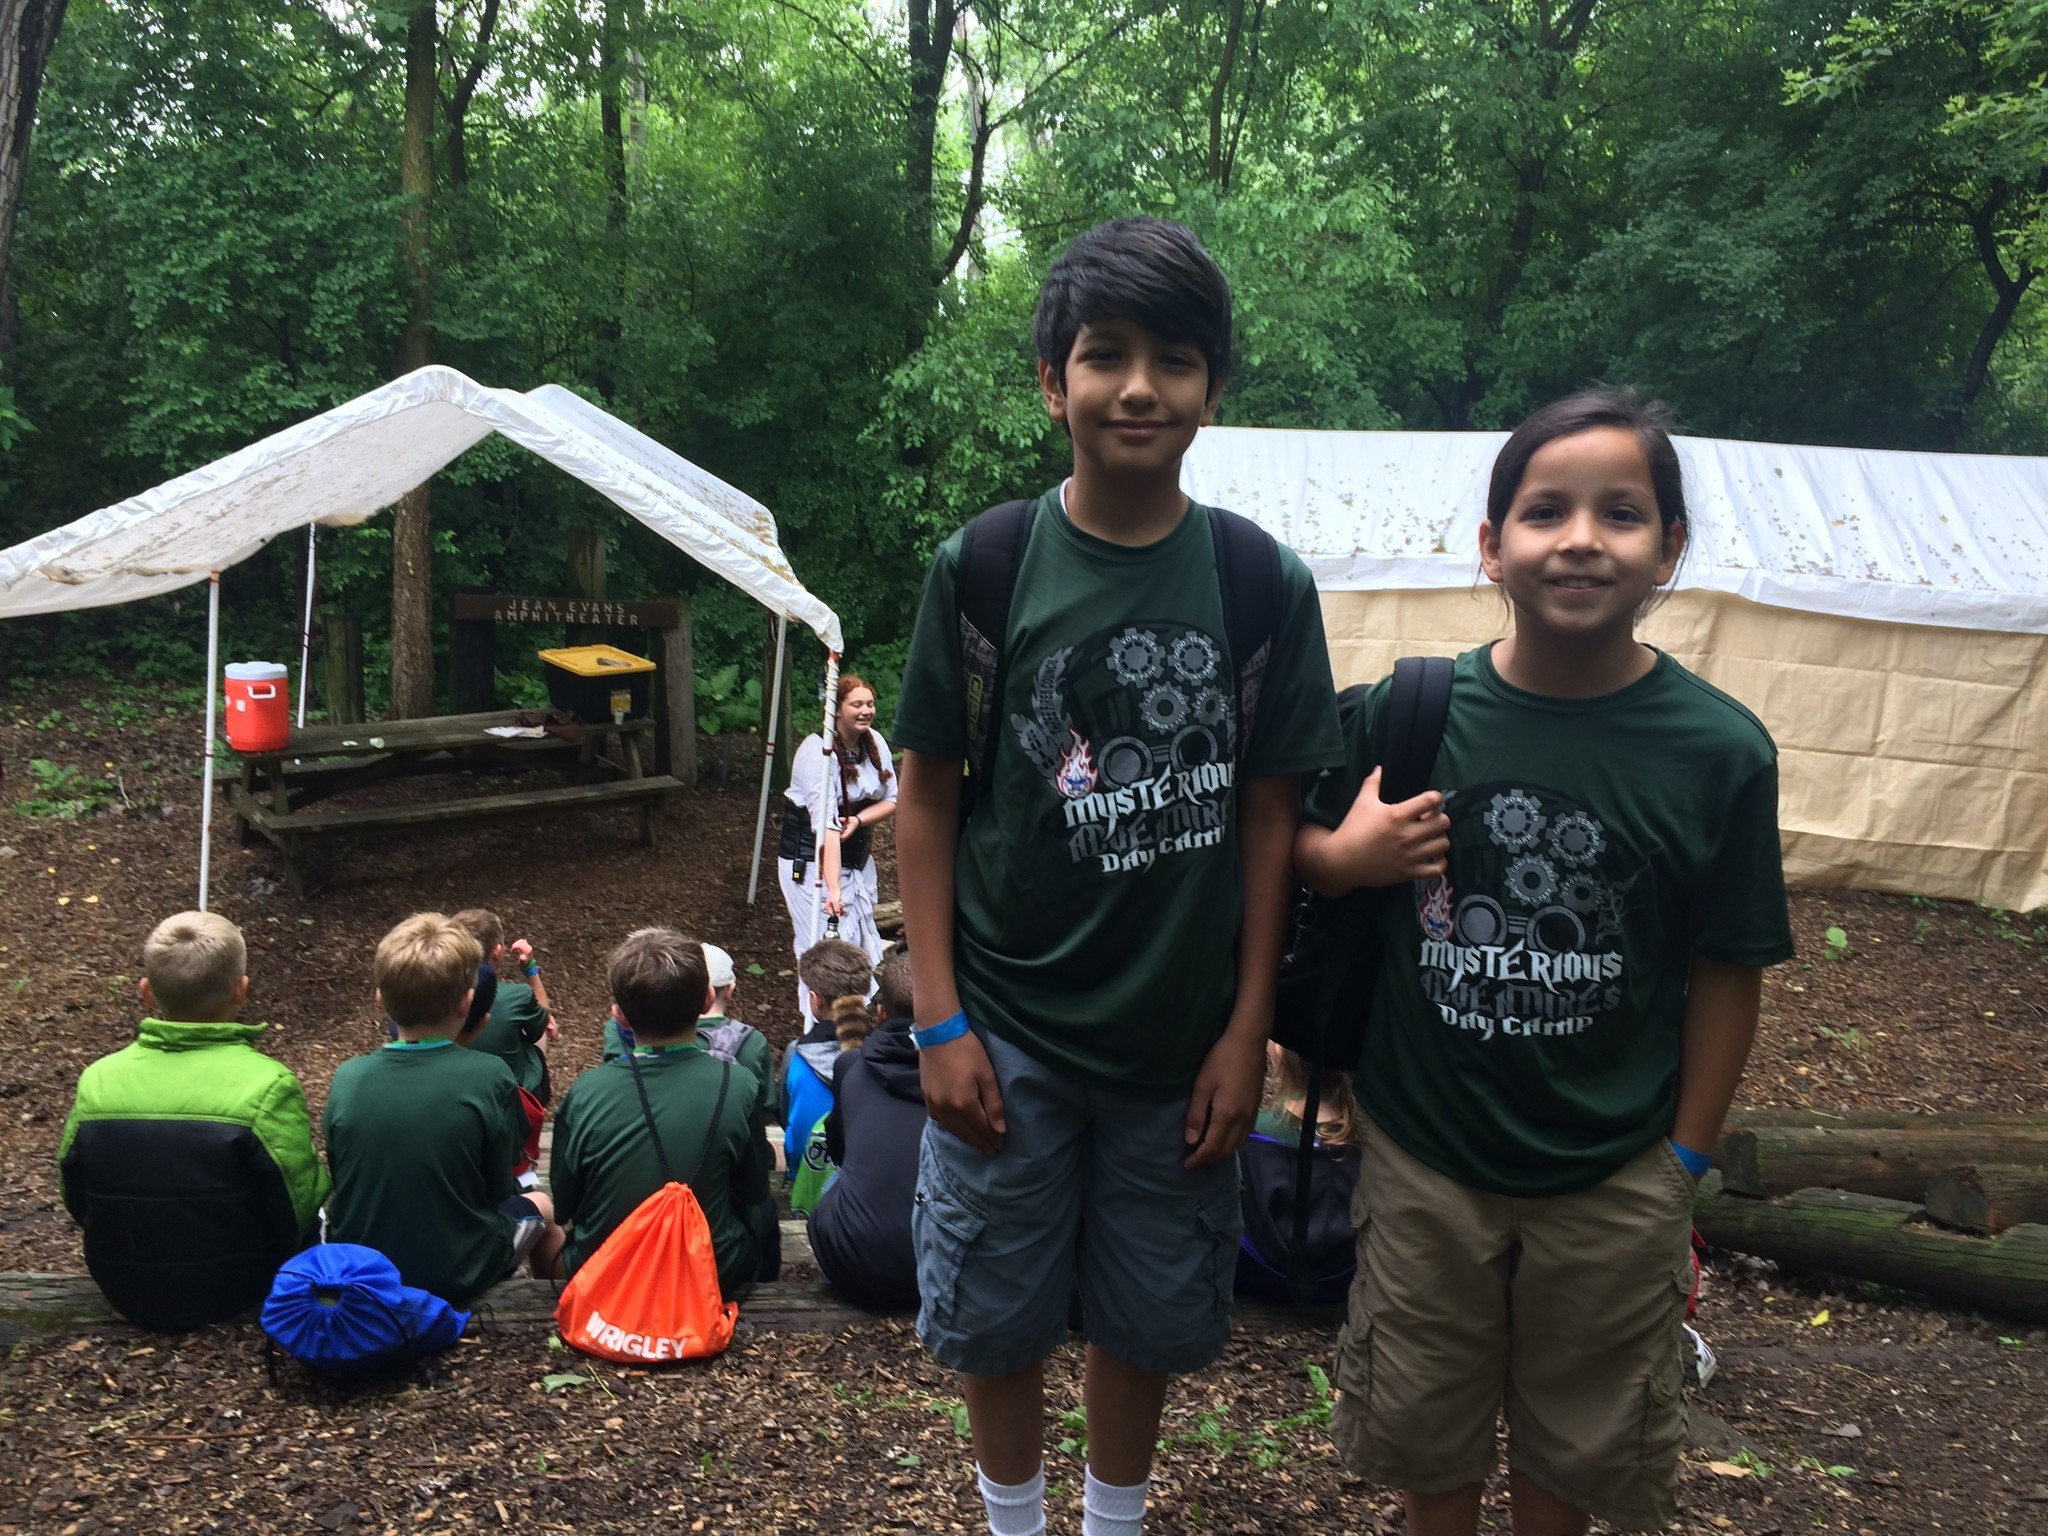 It S No Mystery Why Cub Scout Day Camp Is Popular With